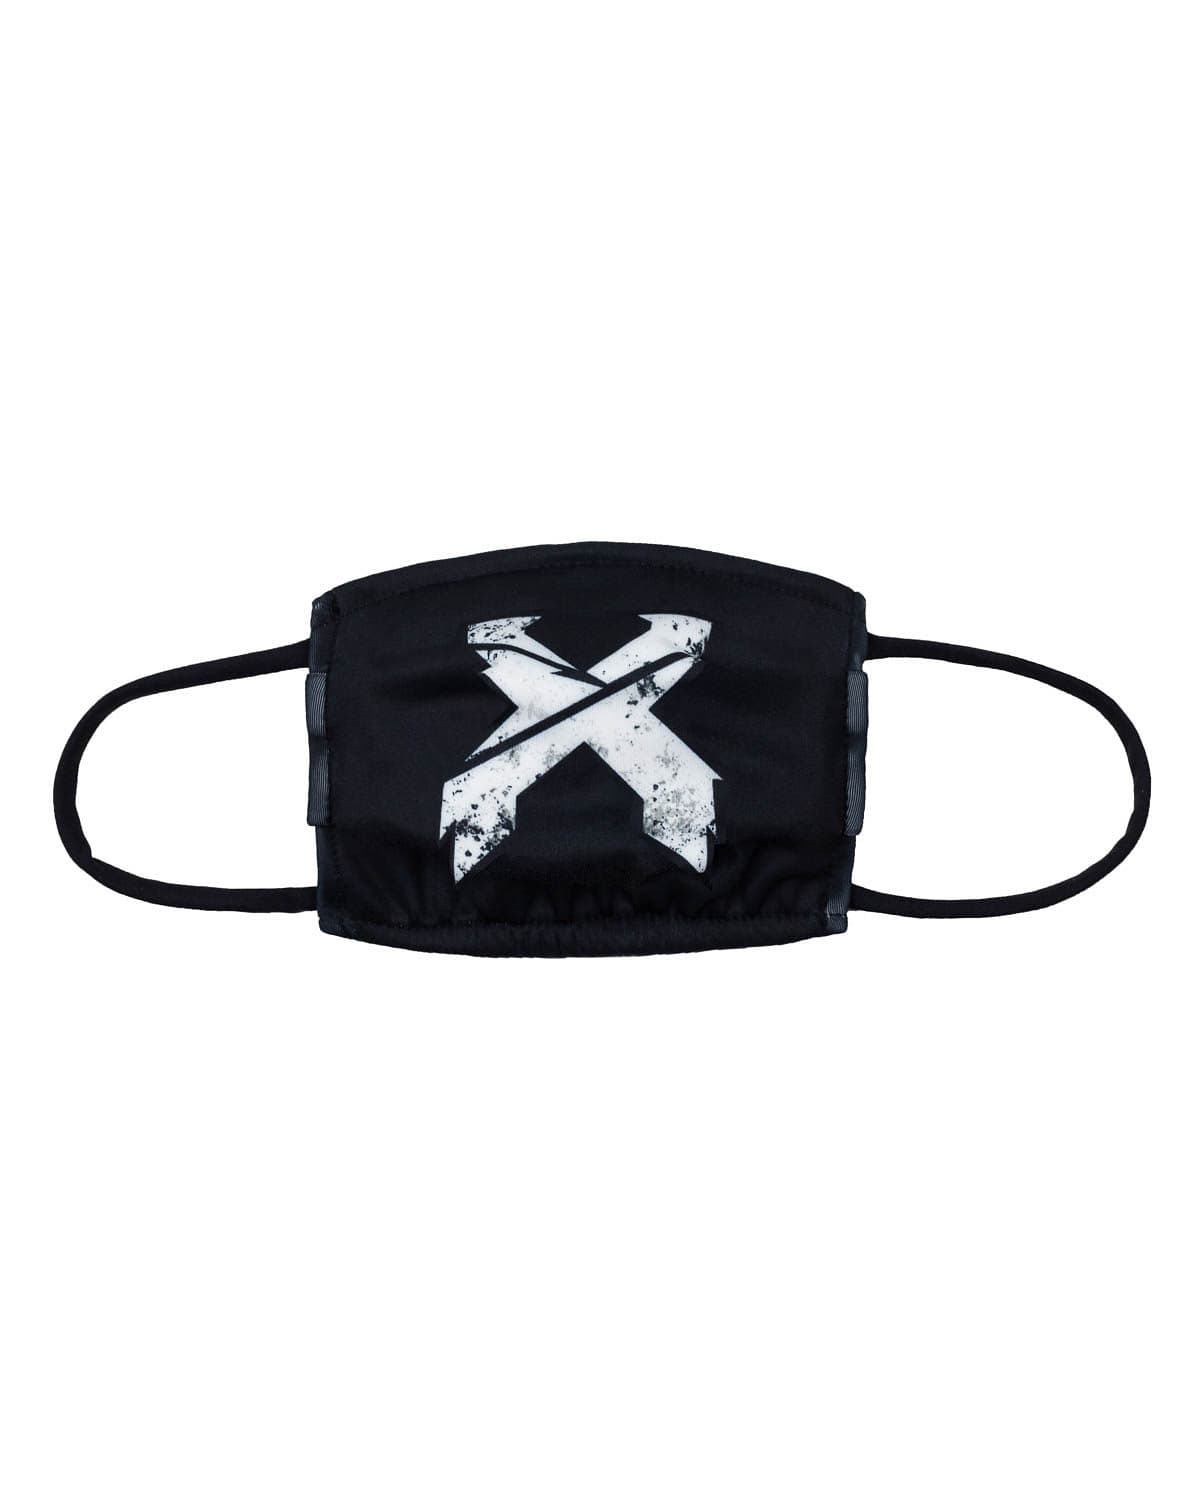 'Sliced' Logo Face Mask - Black/White